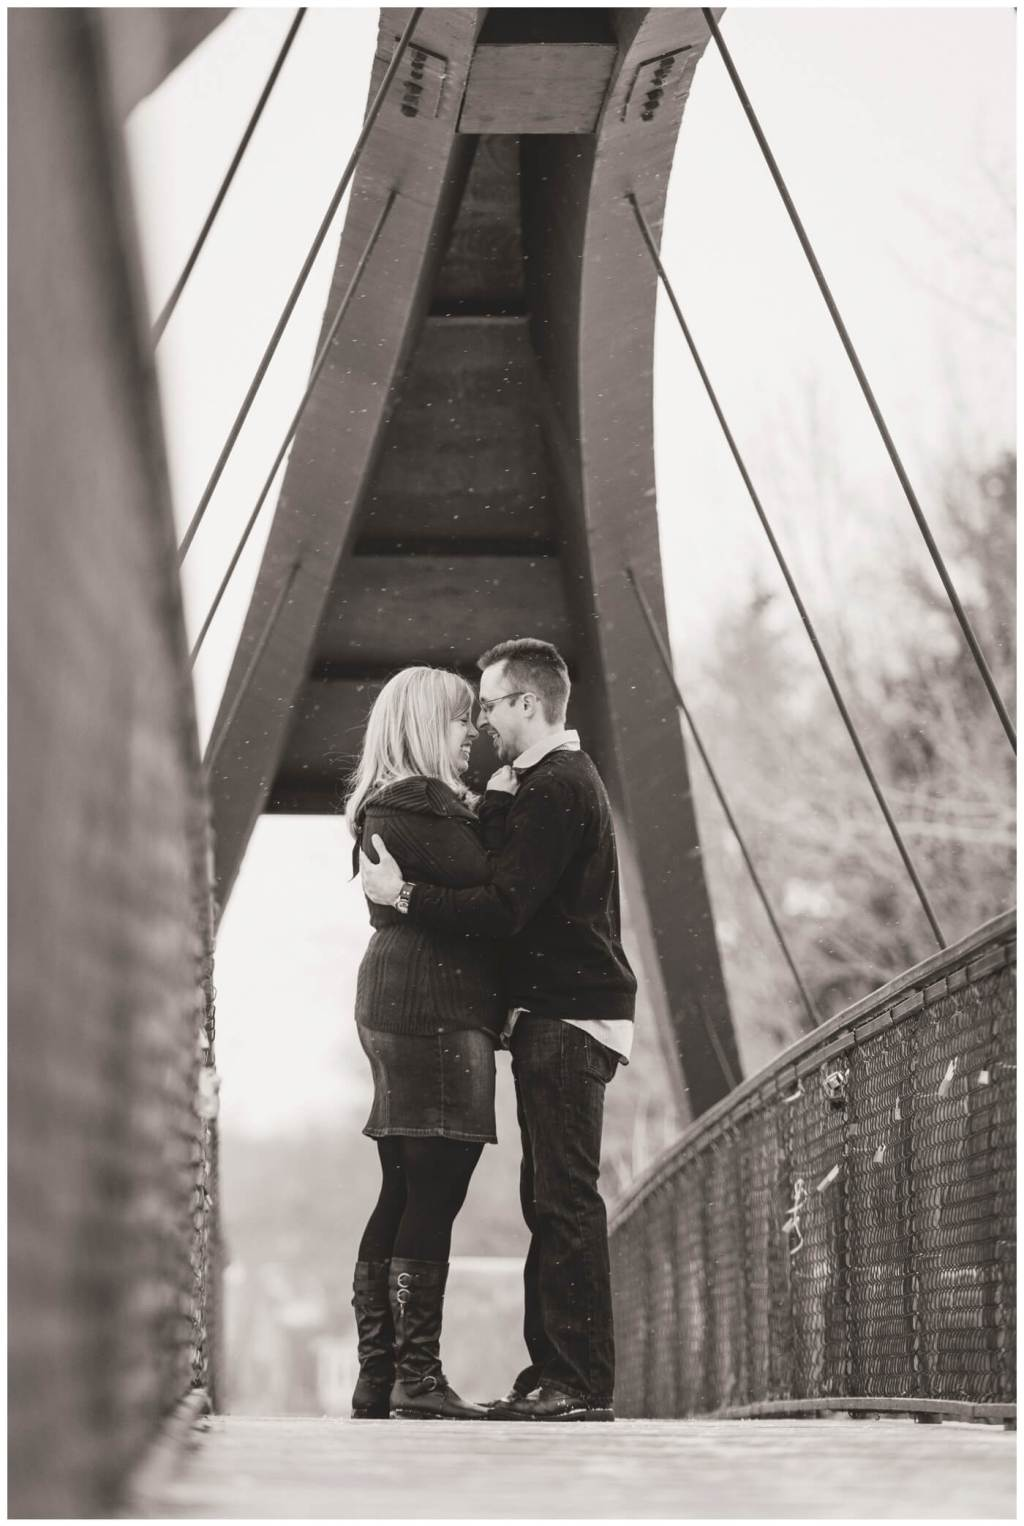 Regina Engagement Photographer - Dave-Sarah - Winter Engagement Session - Rotary Bridge